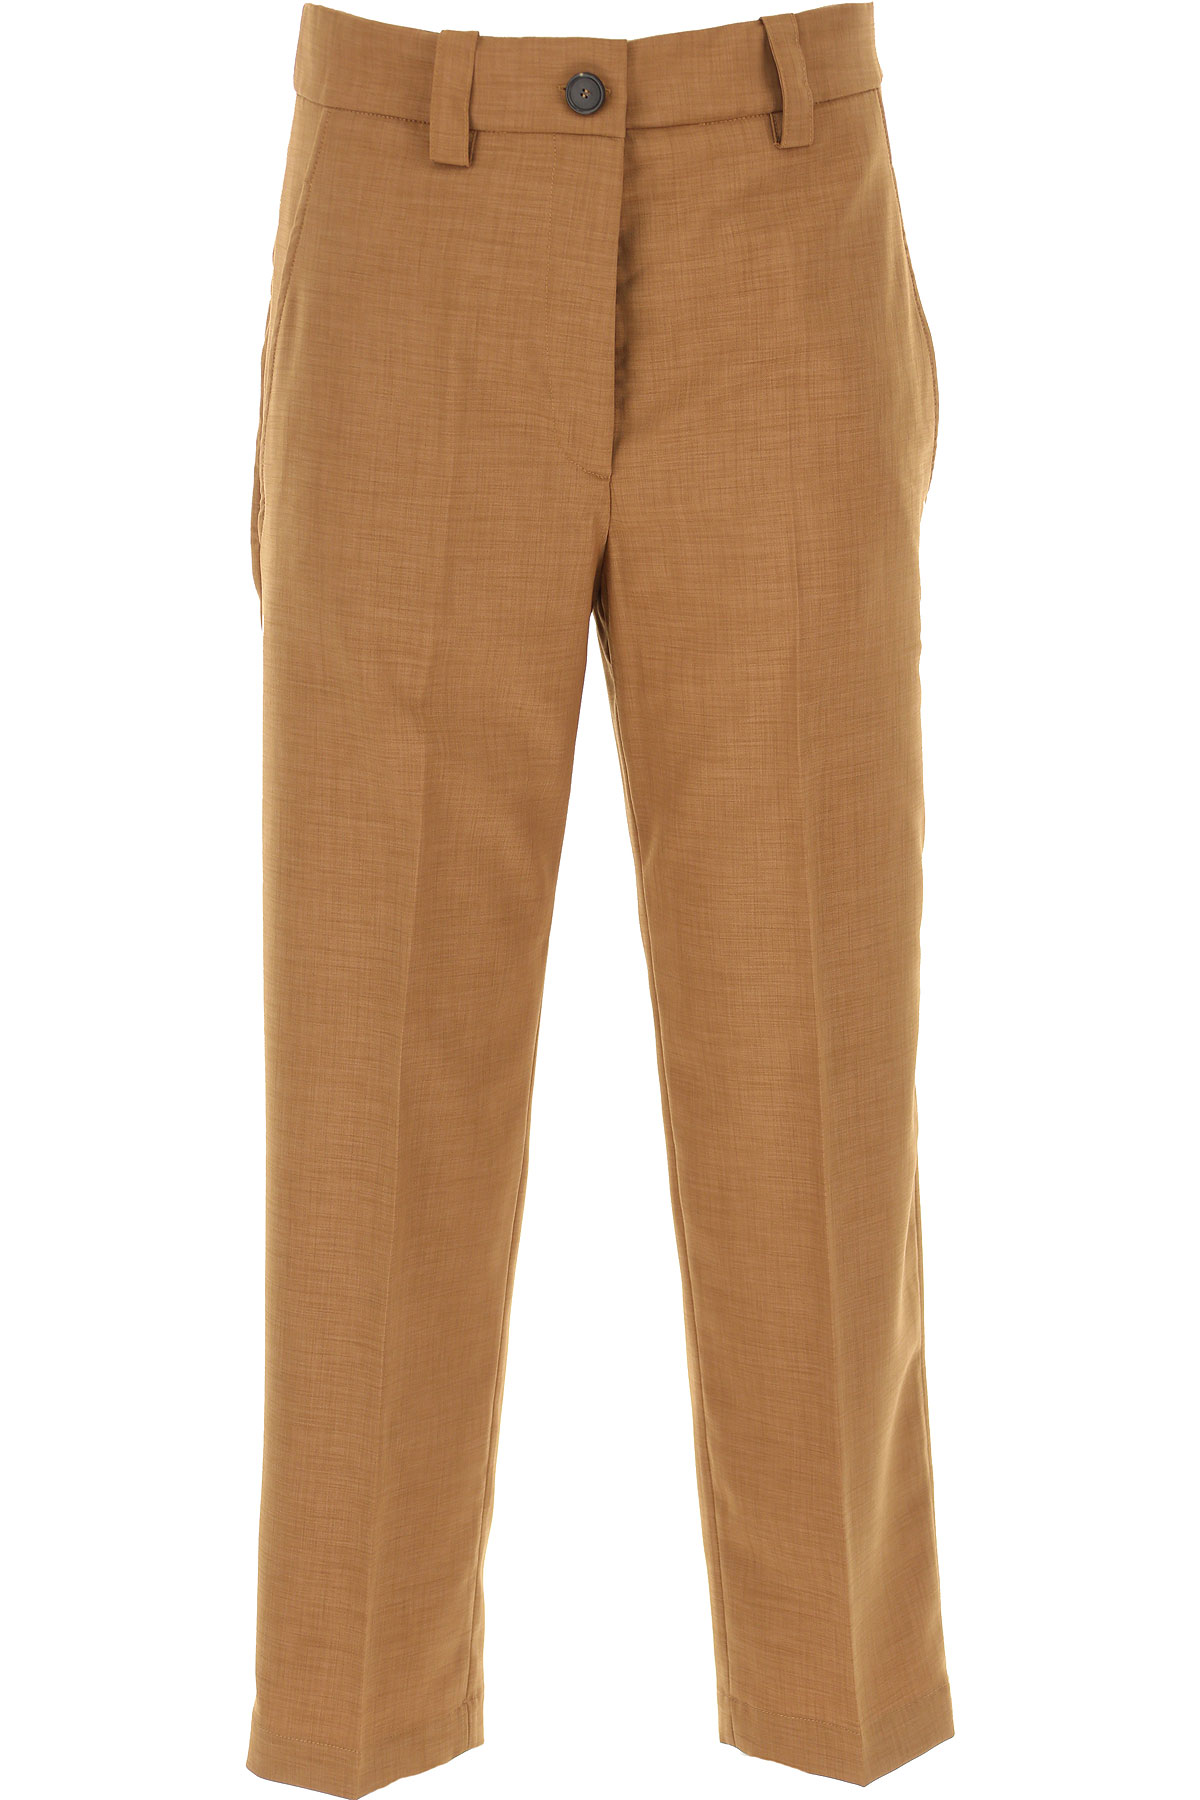 Erika Cavallini Pants for Women On Sale, Camel, polyestere, 2019, 28 30